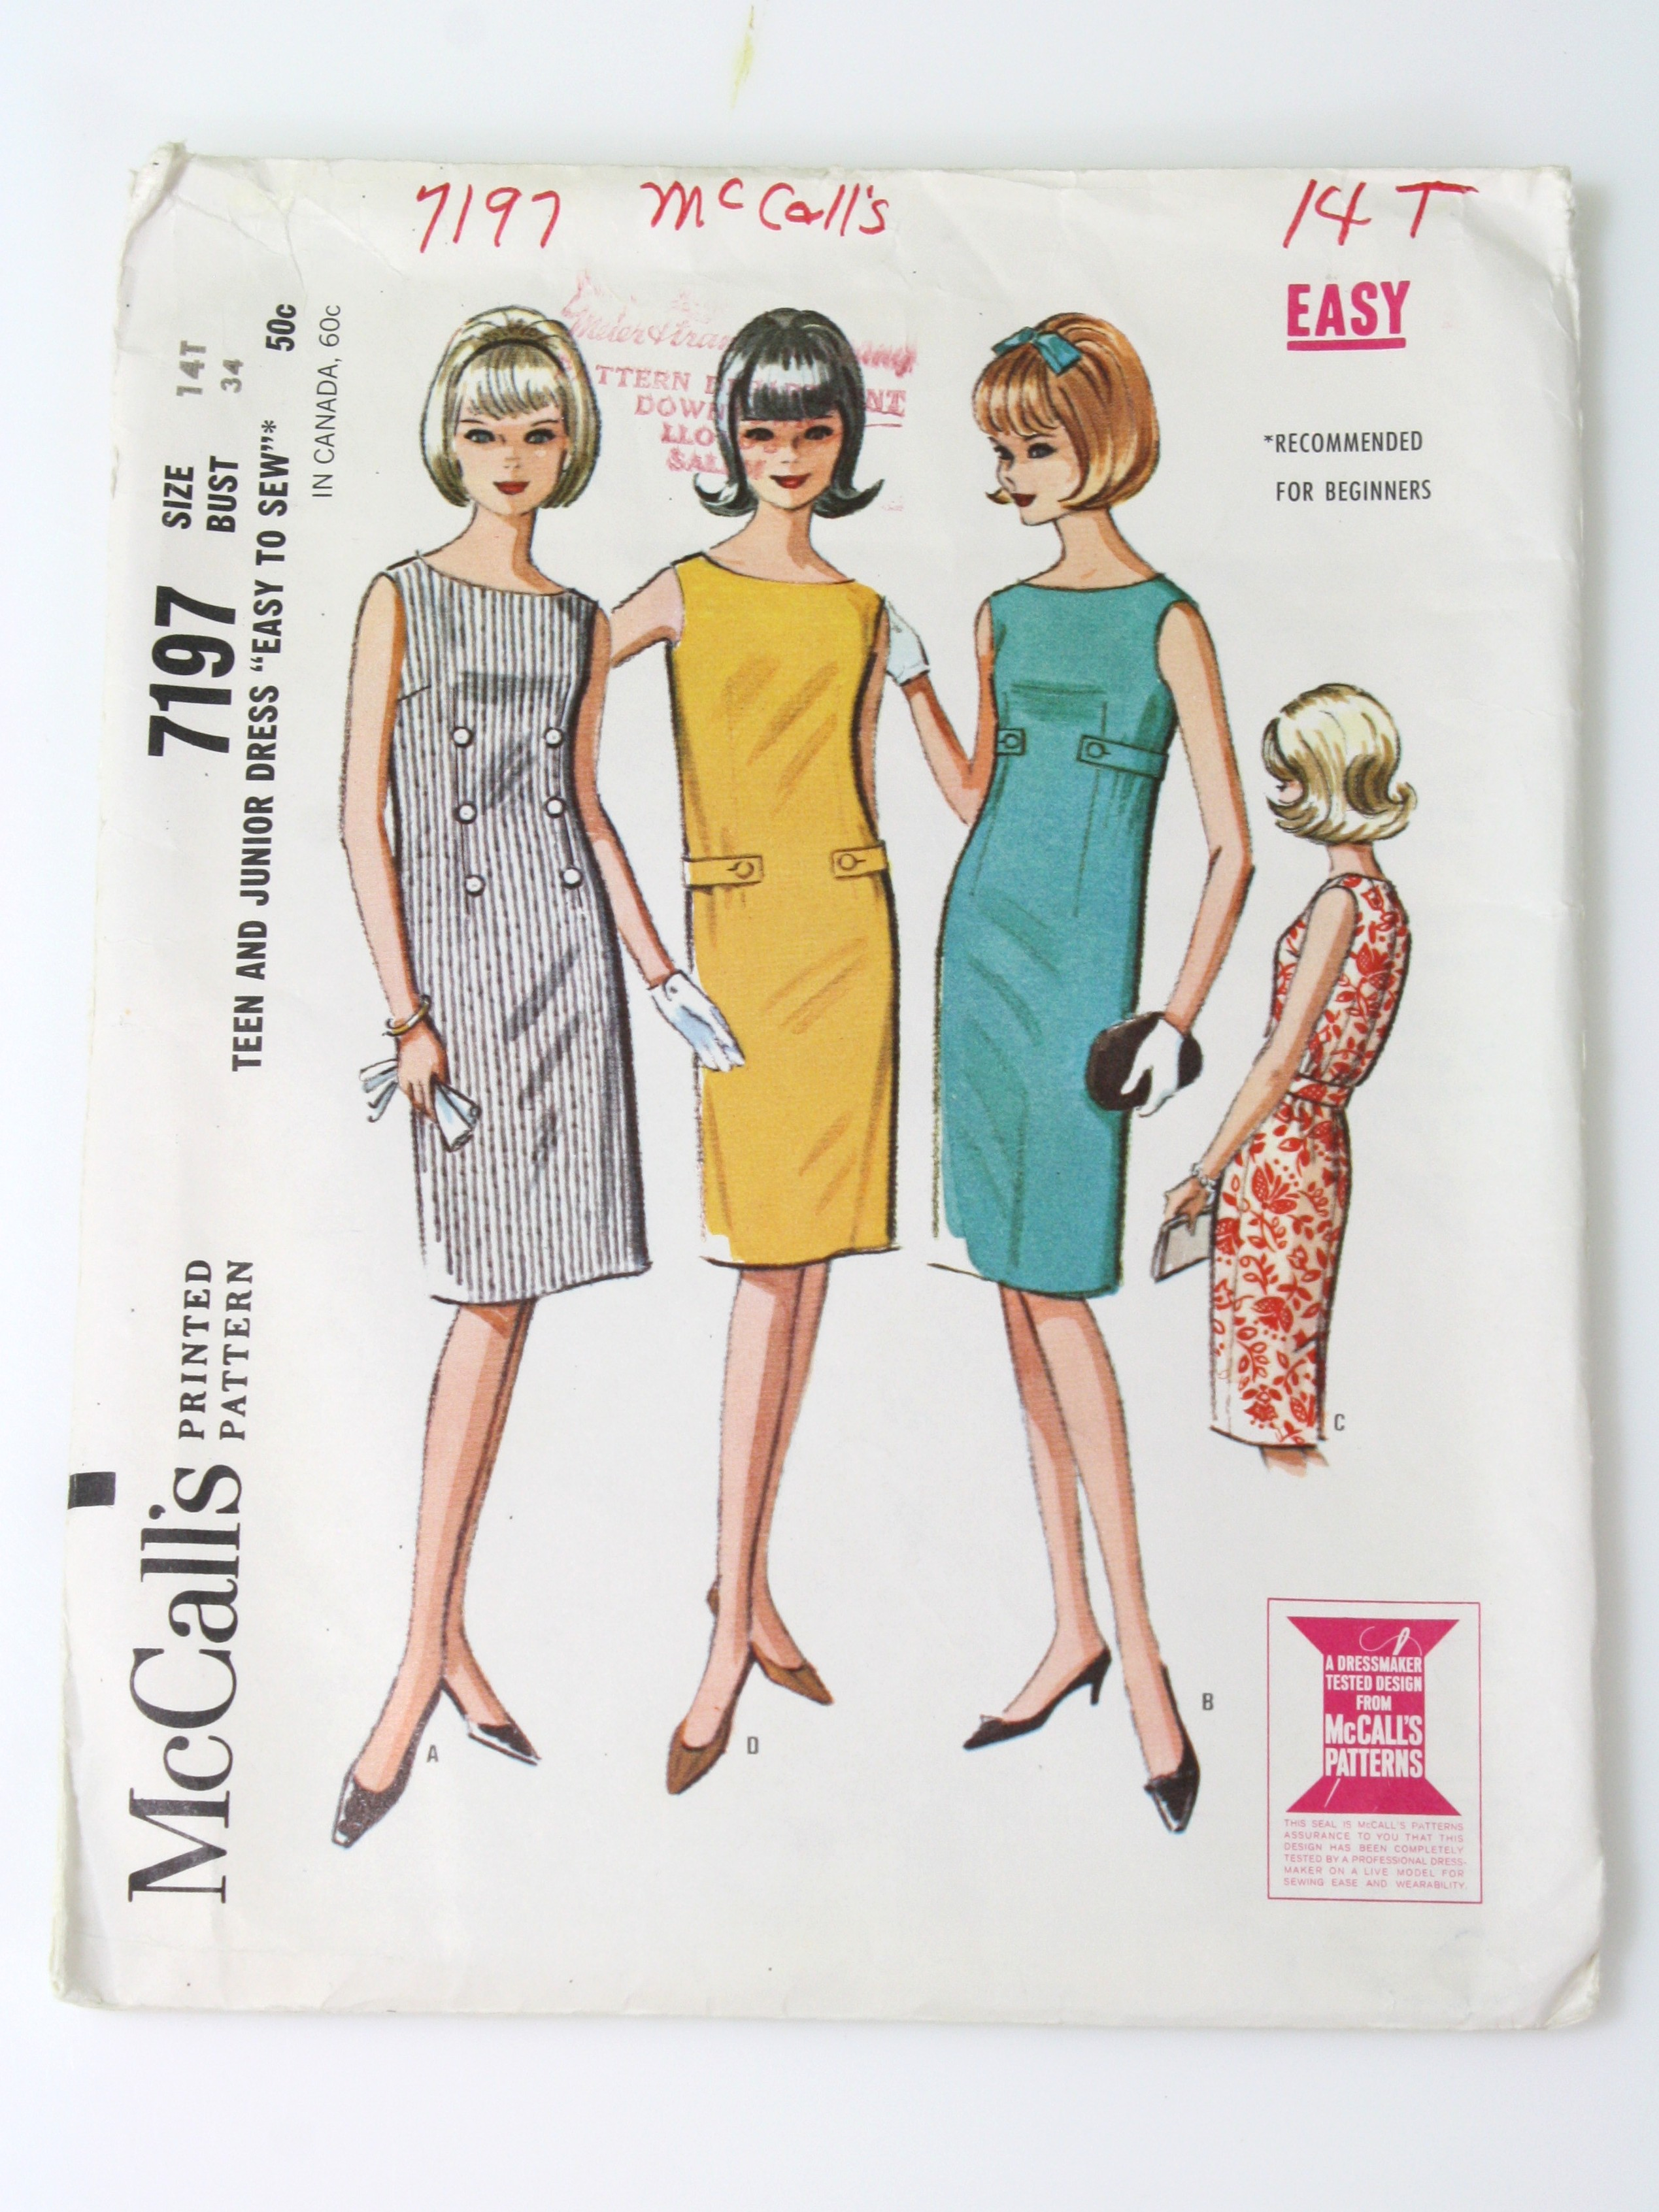 60s vintage sewing pattern 60s mccalls pattern no 7197 girls 60s vintage sewing pattern 60s mccalls pattern no 7197 girls teens and junior easy sew dress pattern with options for rim and belt details jeuxipadfo Image collections